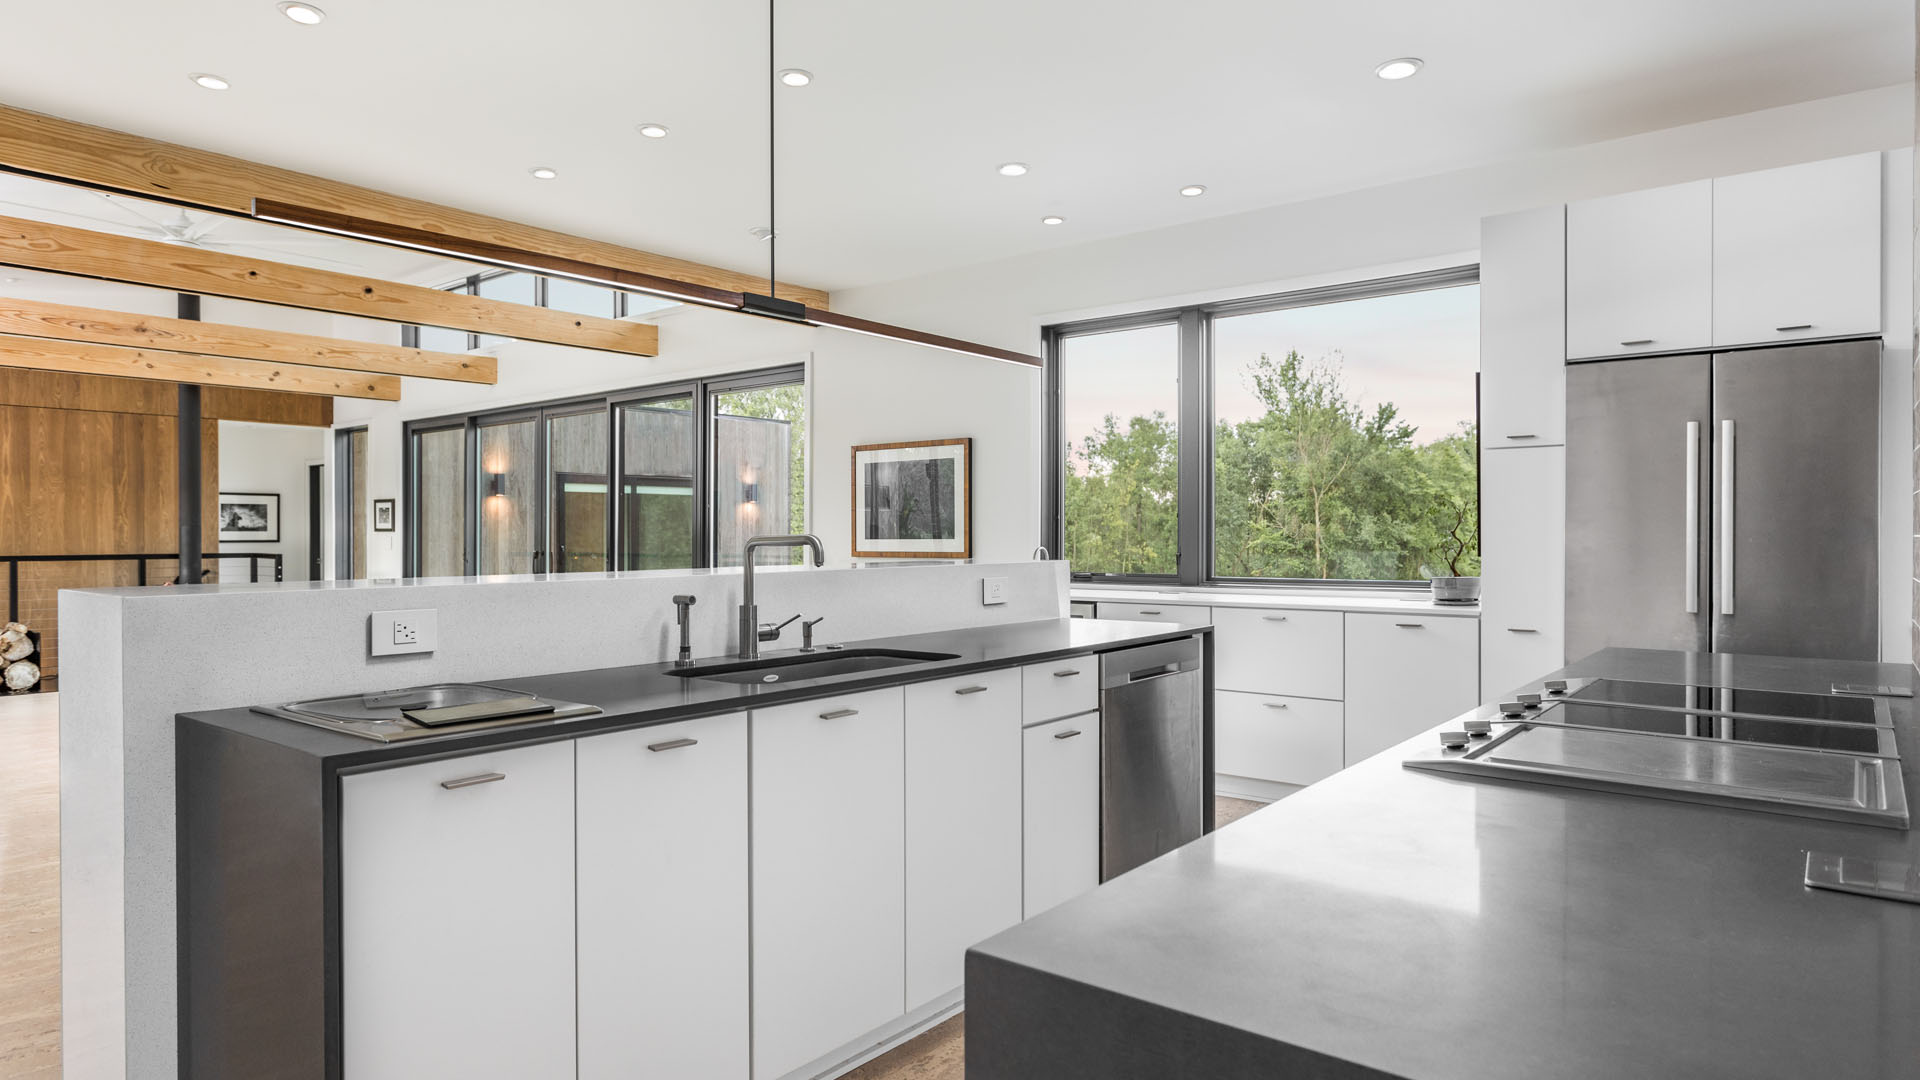 View of kitchen, dining, living room with vaulted ceilings and clerestory windows - stainless steel appliances and white flat door kitchen cabinets and exposed beams - New Modern House 1 (Copperwood) - Zionsville, IN